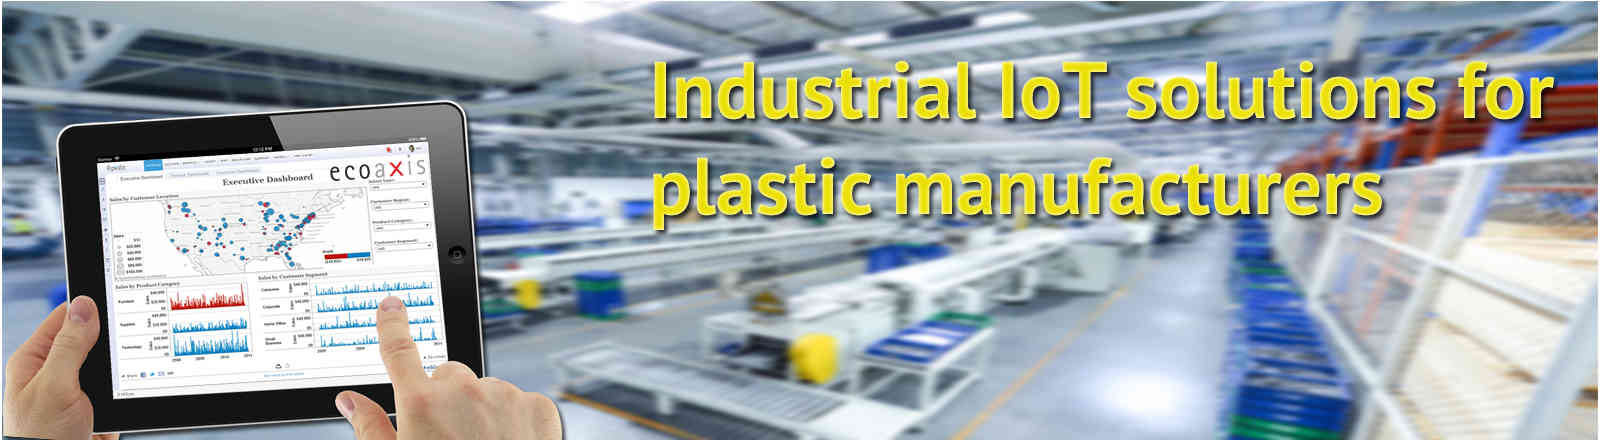 Improve OEE, ROI, and much more in plastic manufacturing